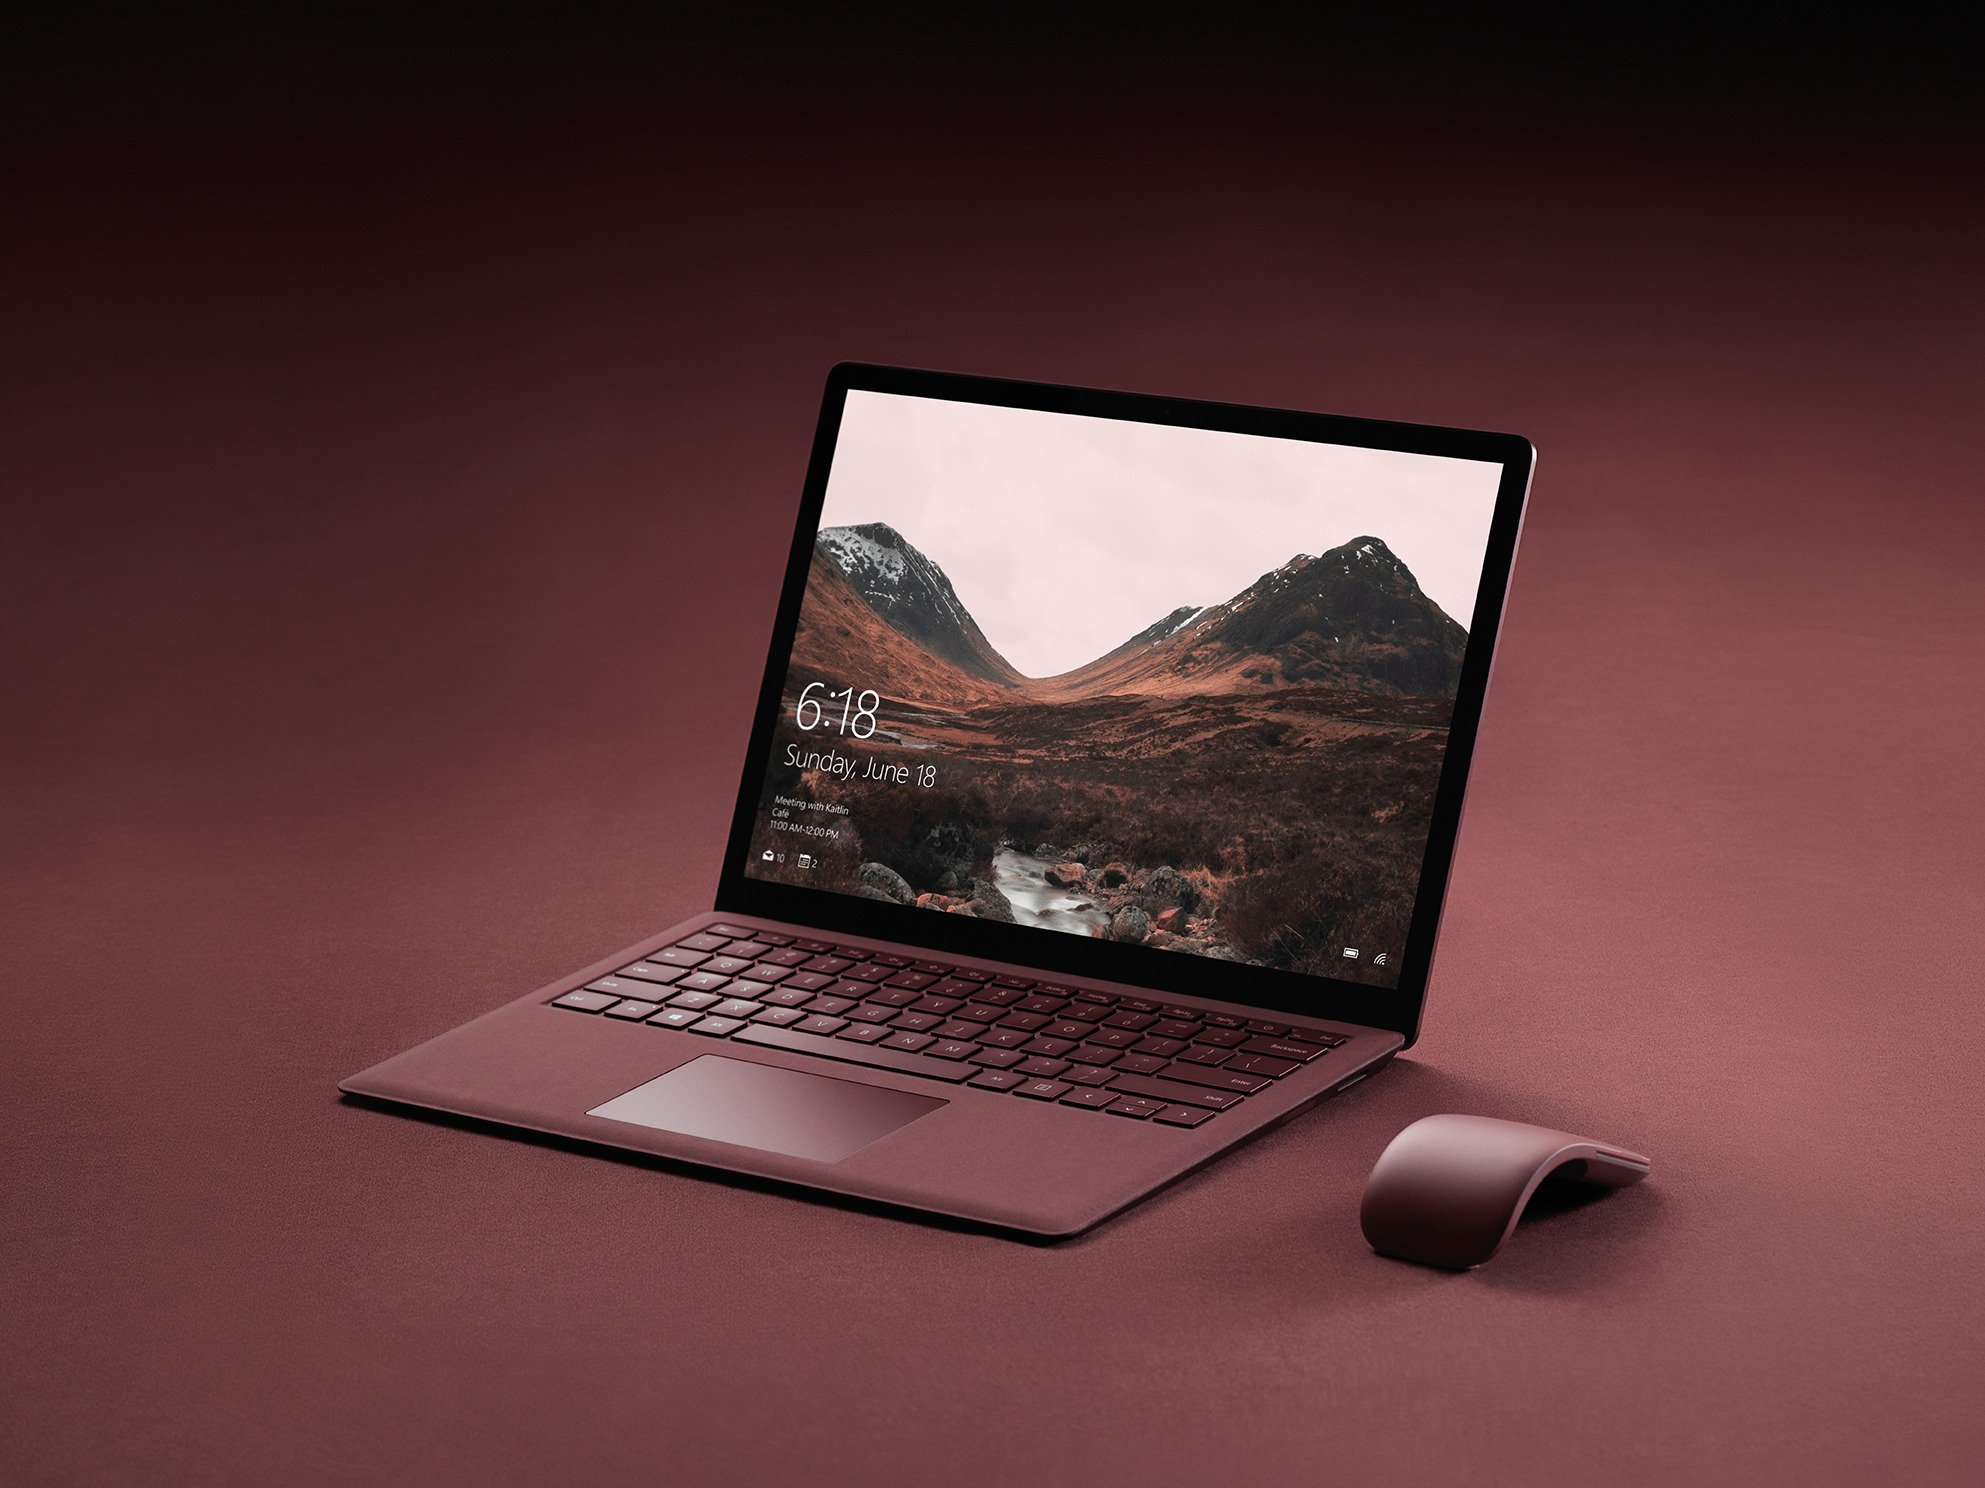 Microsoft's first Windows 10 S device is the Surface Laptop 1